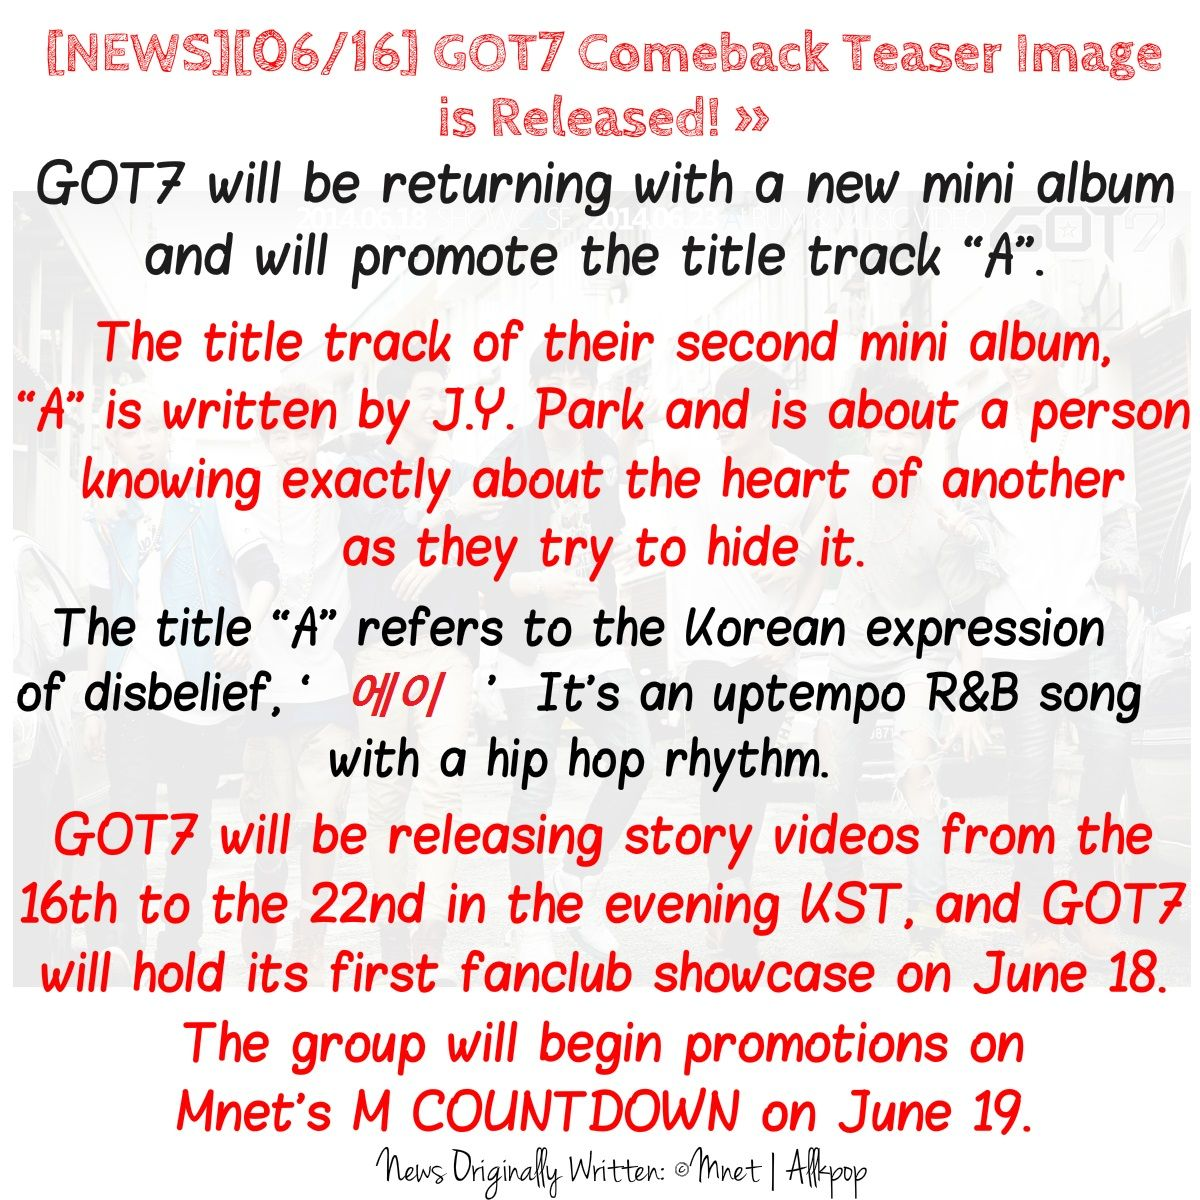 [NEWS][06/16] GOT7 Comeback Teaser Image is Released! » #갓세븐 #에이 Official Channels for more information, please visit: ▶Homepage: http://got7.jype.com/ ▶Facebook: https://facebook.com/GOT7Official ▶Twitter: https://twitter.com/GOT7Official ▶Fancafe: http://cafe.daum.net/GOT7Official